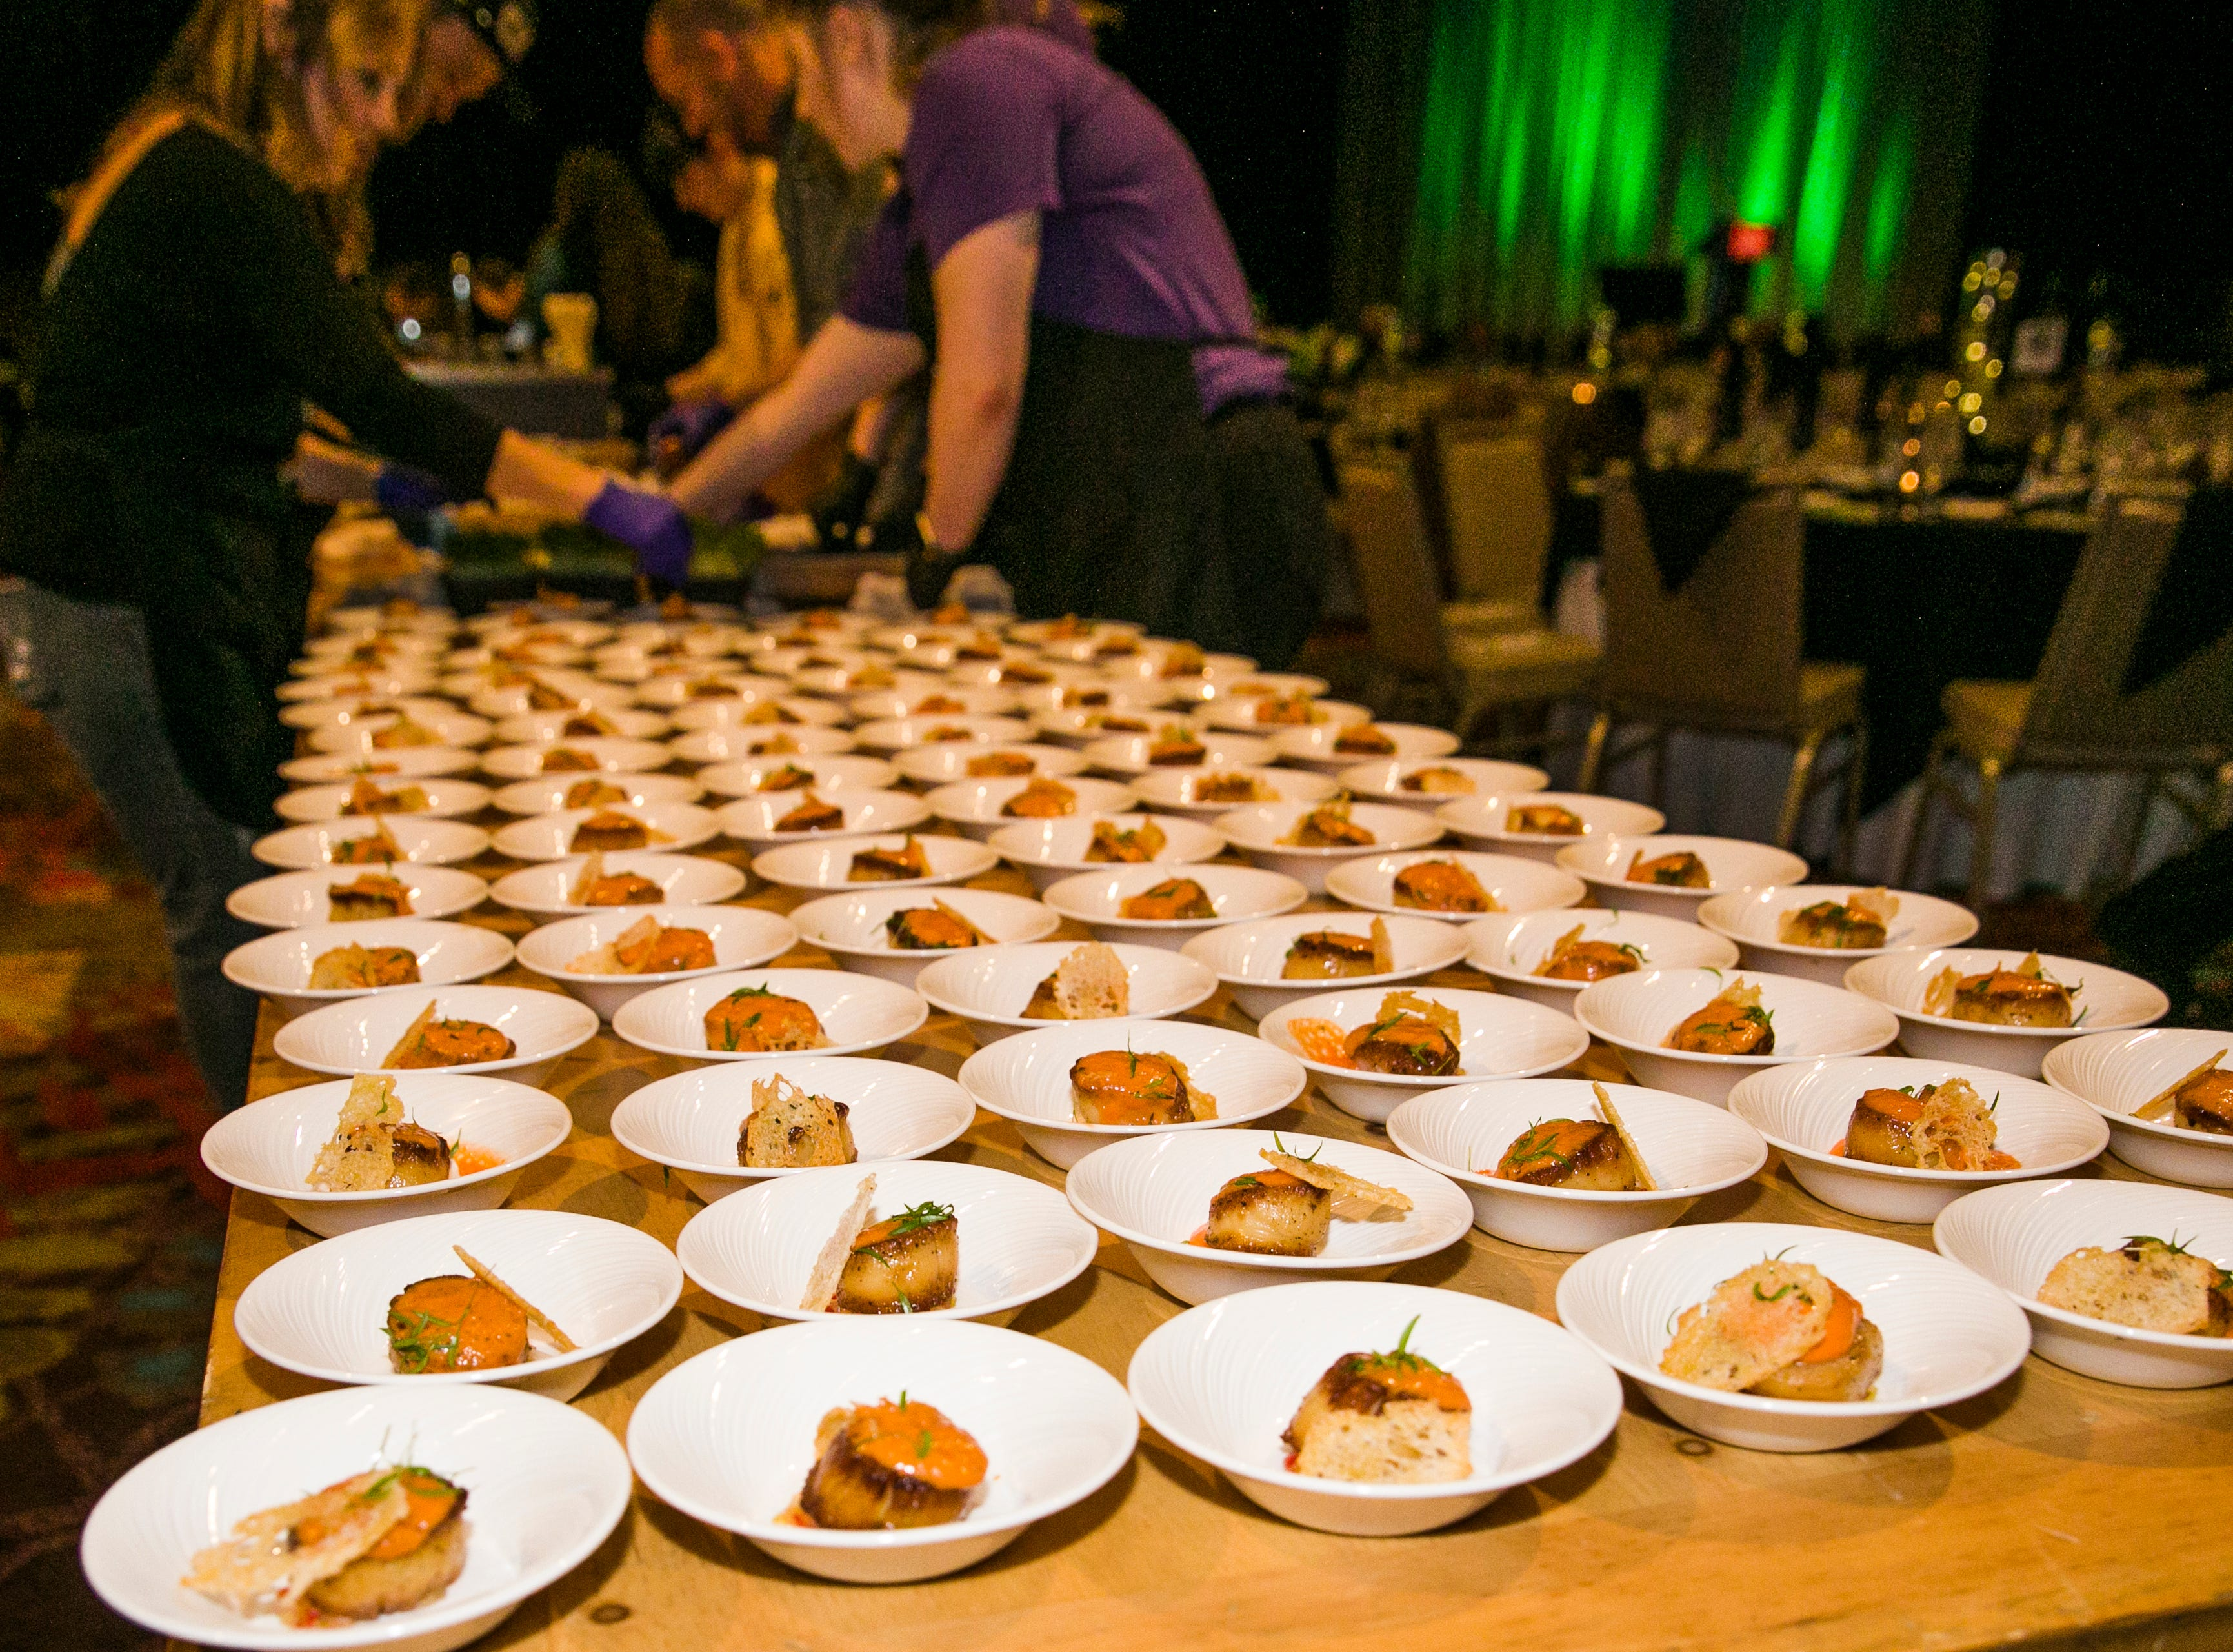 A photograph taken during Big Chefs Big Gala at the Grand Sierra Resort in Reno, Nevada on Saturday, April 13, 2019.